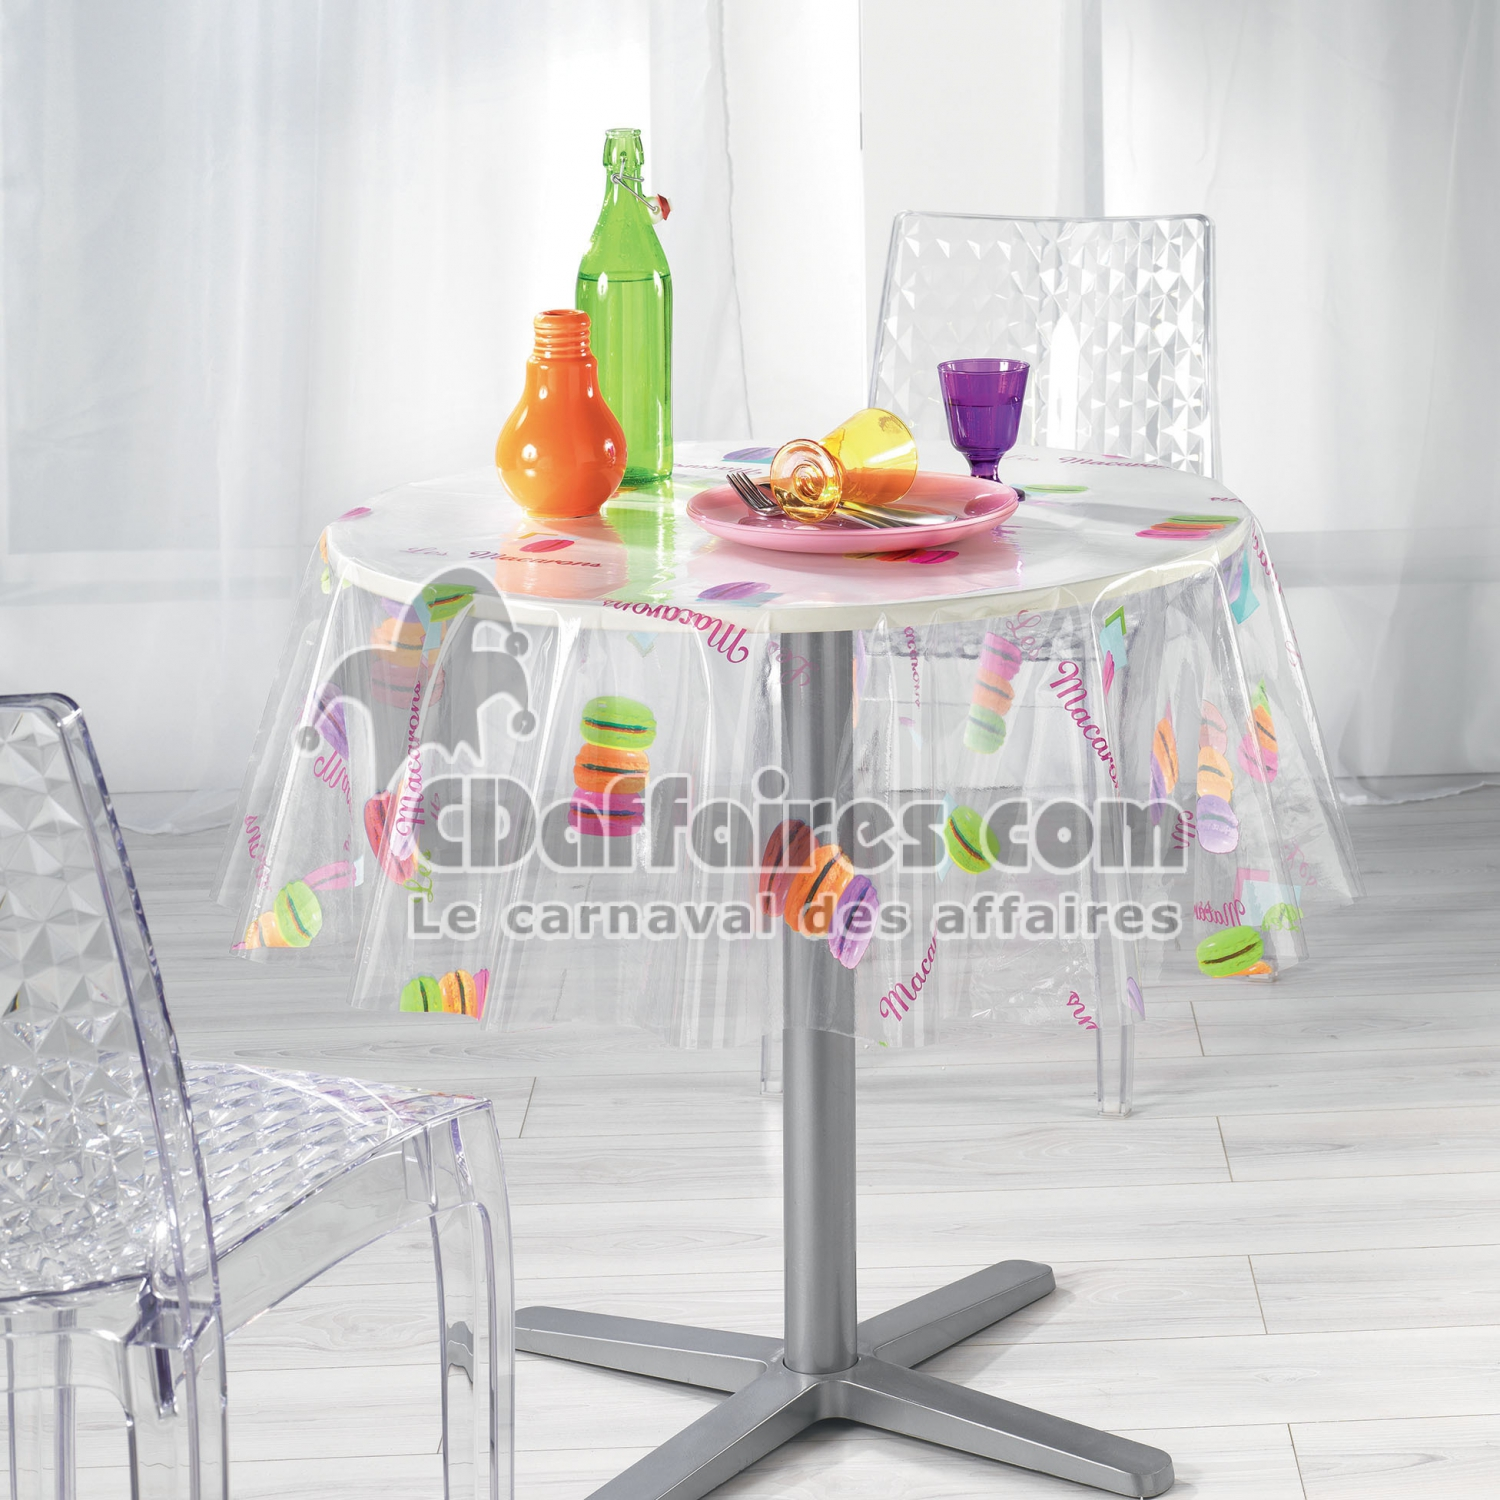 nappe cristal ronde 0 140 cm pvc imprime 14 100e macarons cdaffaires. Black Bedroom Furniture Sets. Home Design Ideas